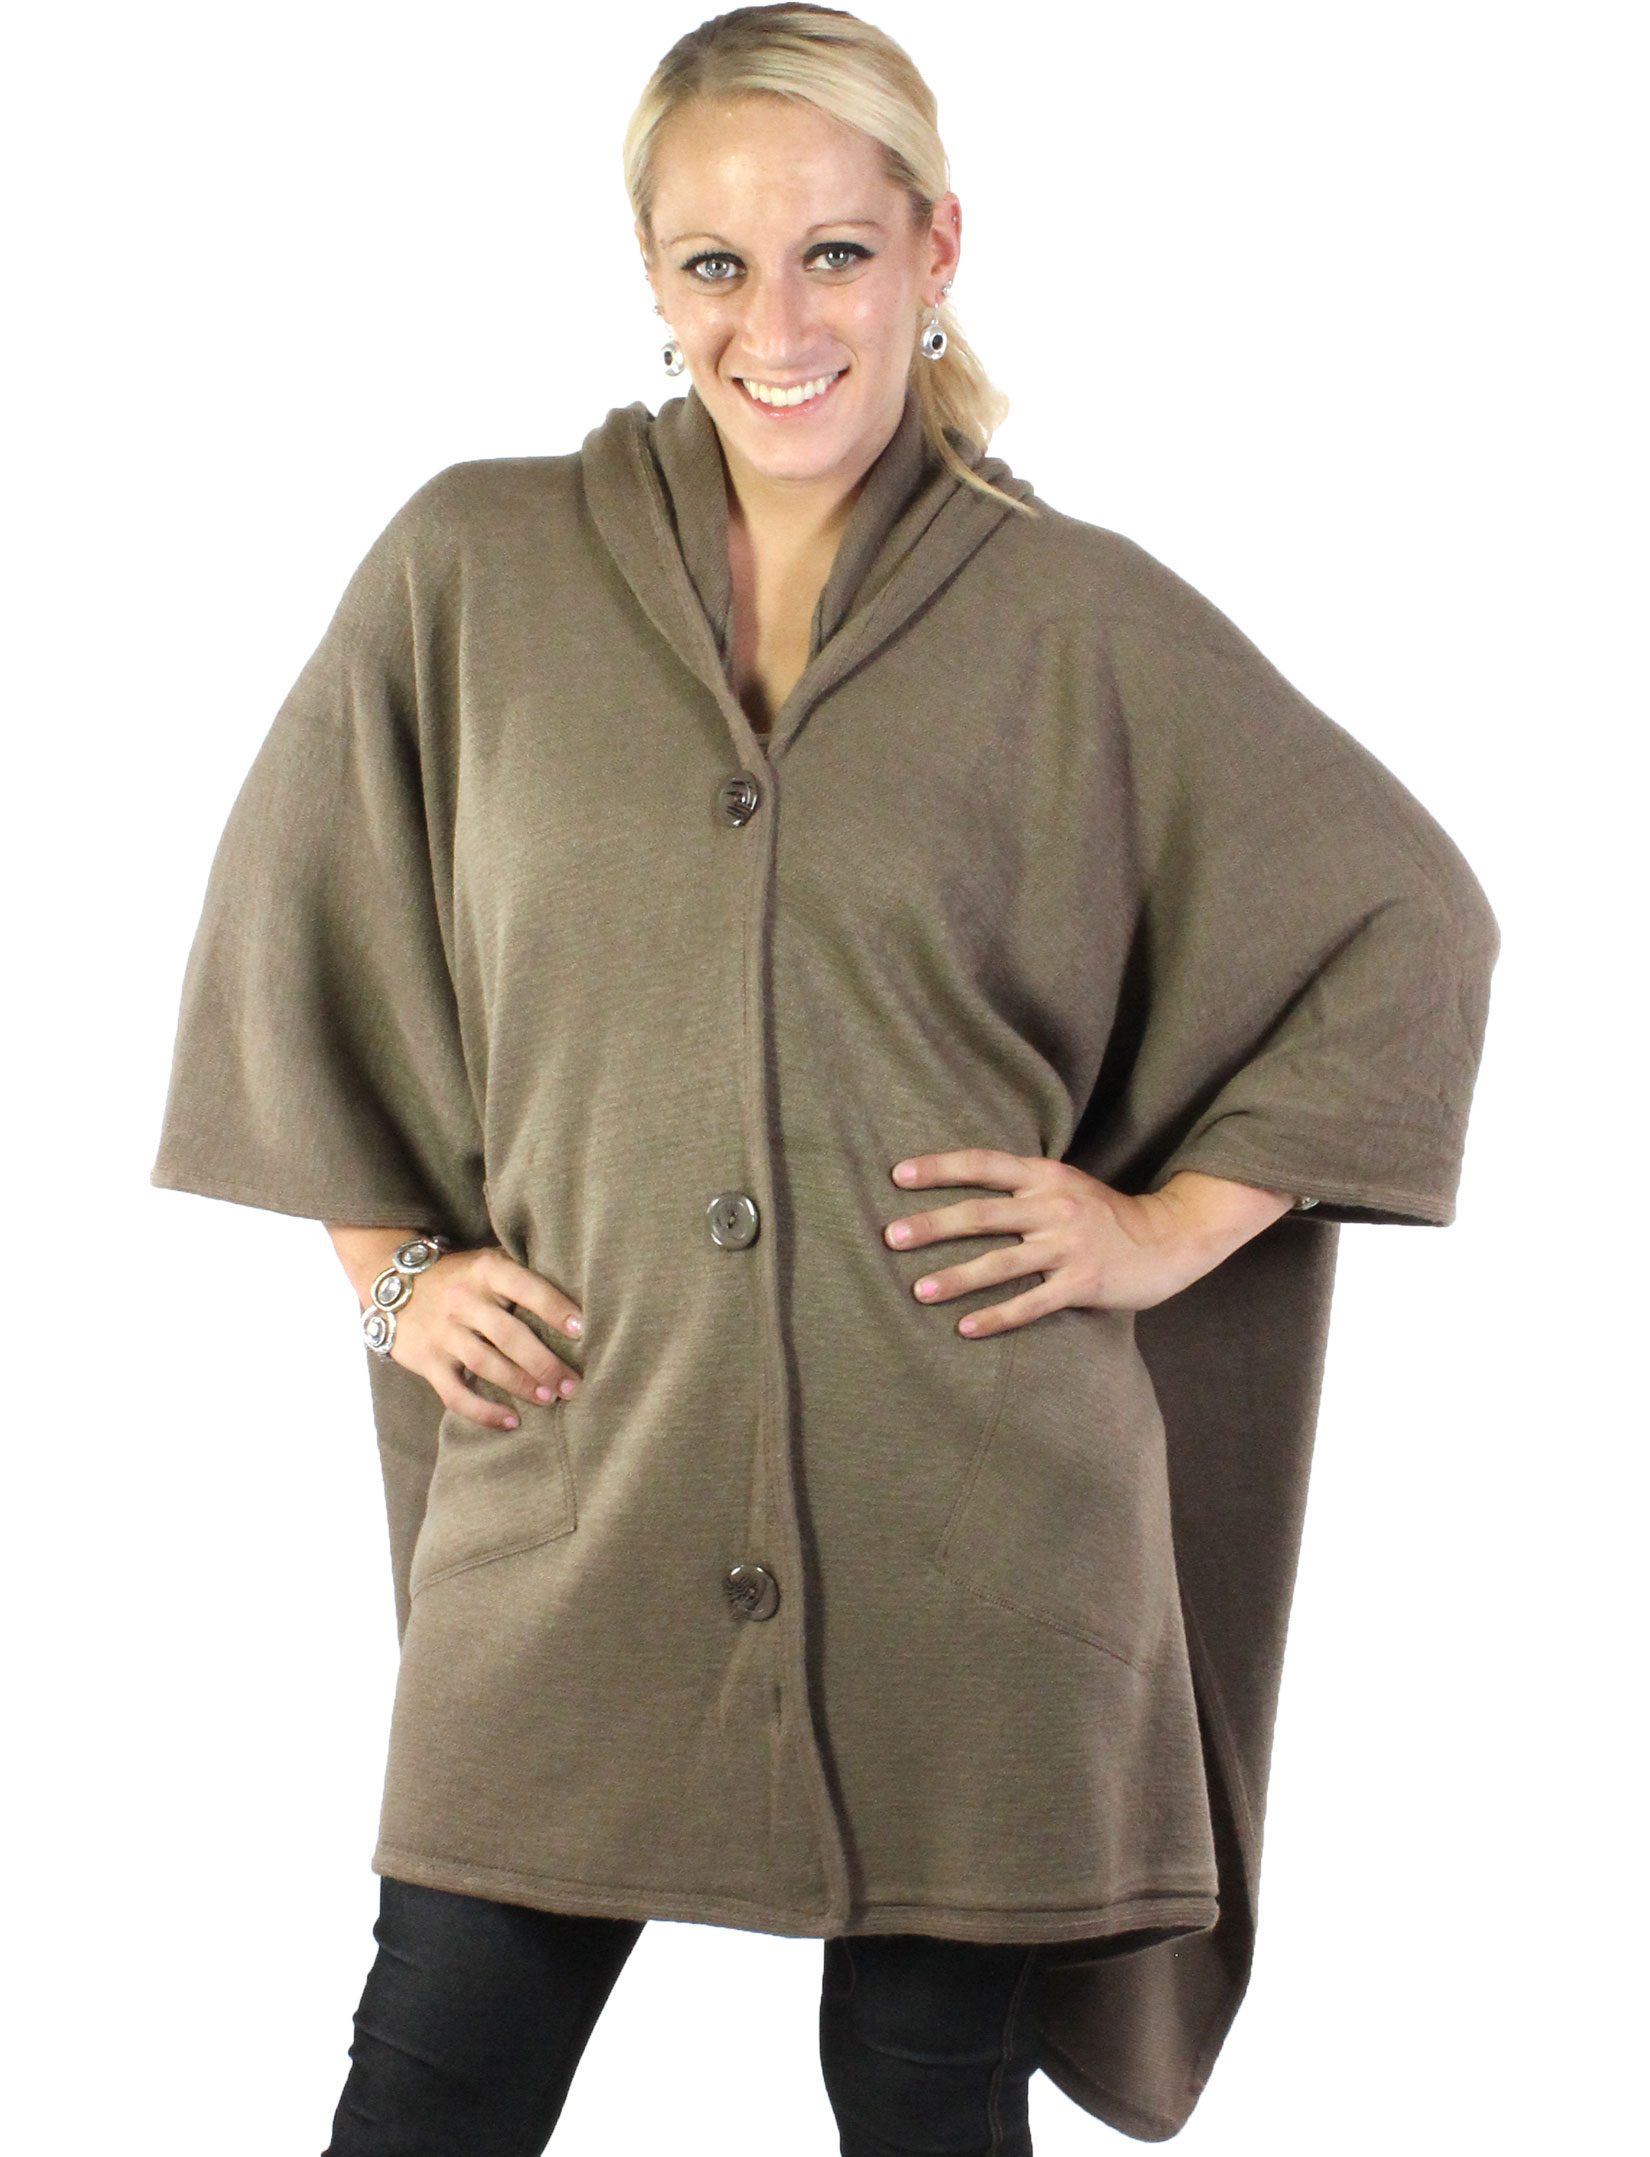 wholesale Capes - Button Closure Hoodie w/ Pocket 8708